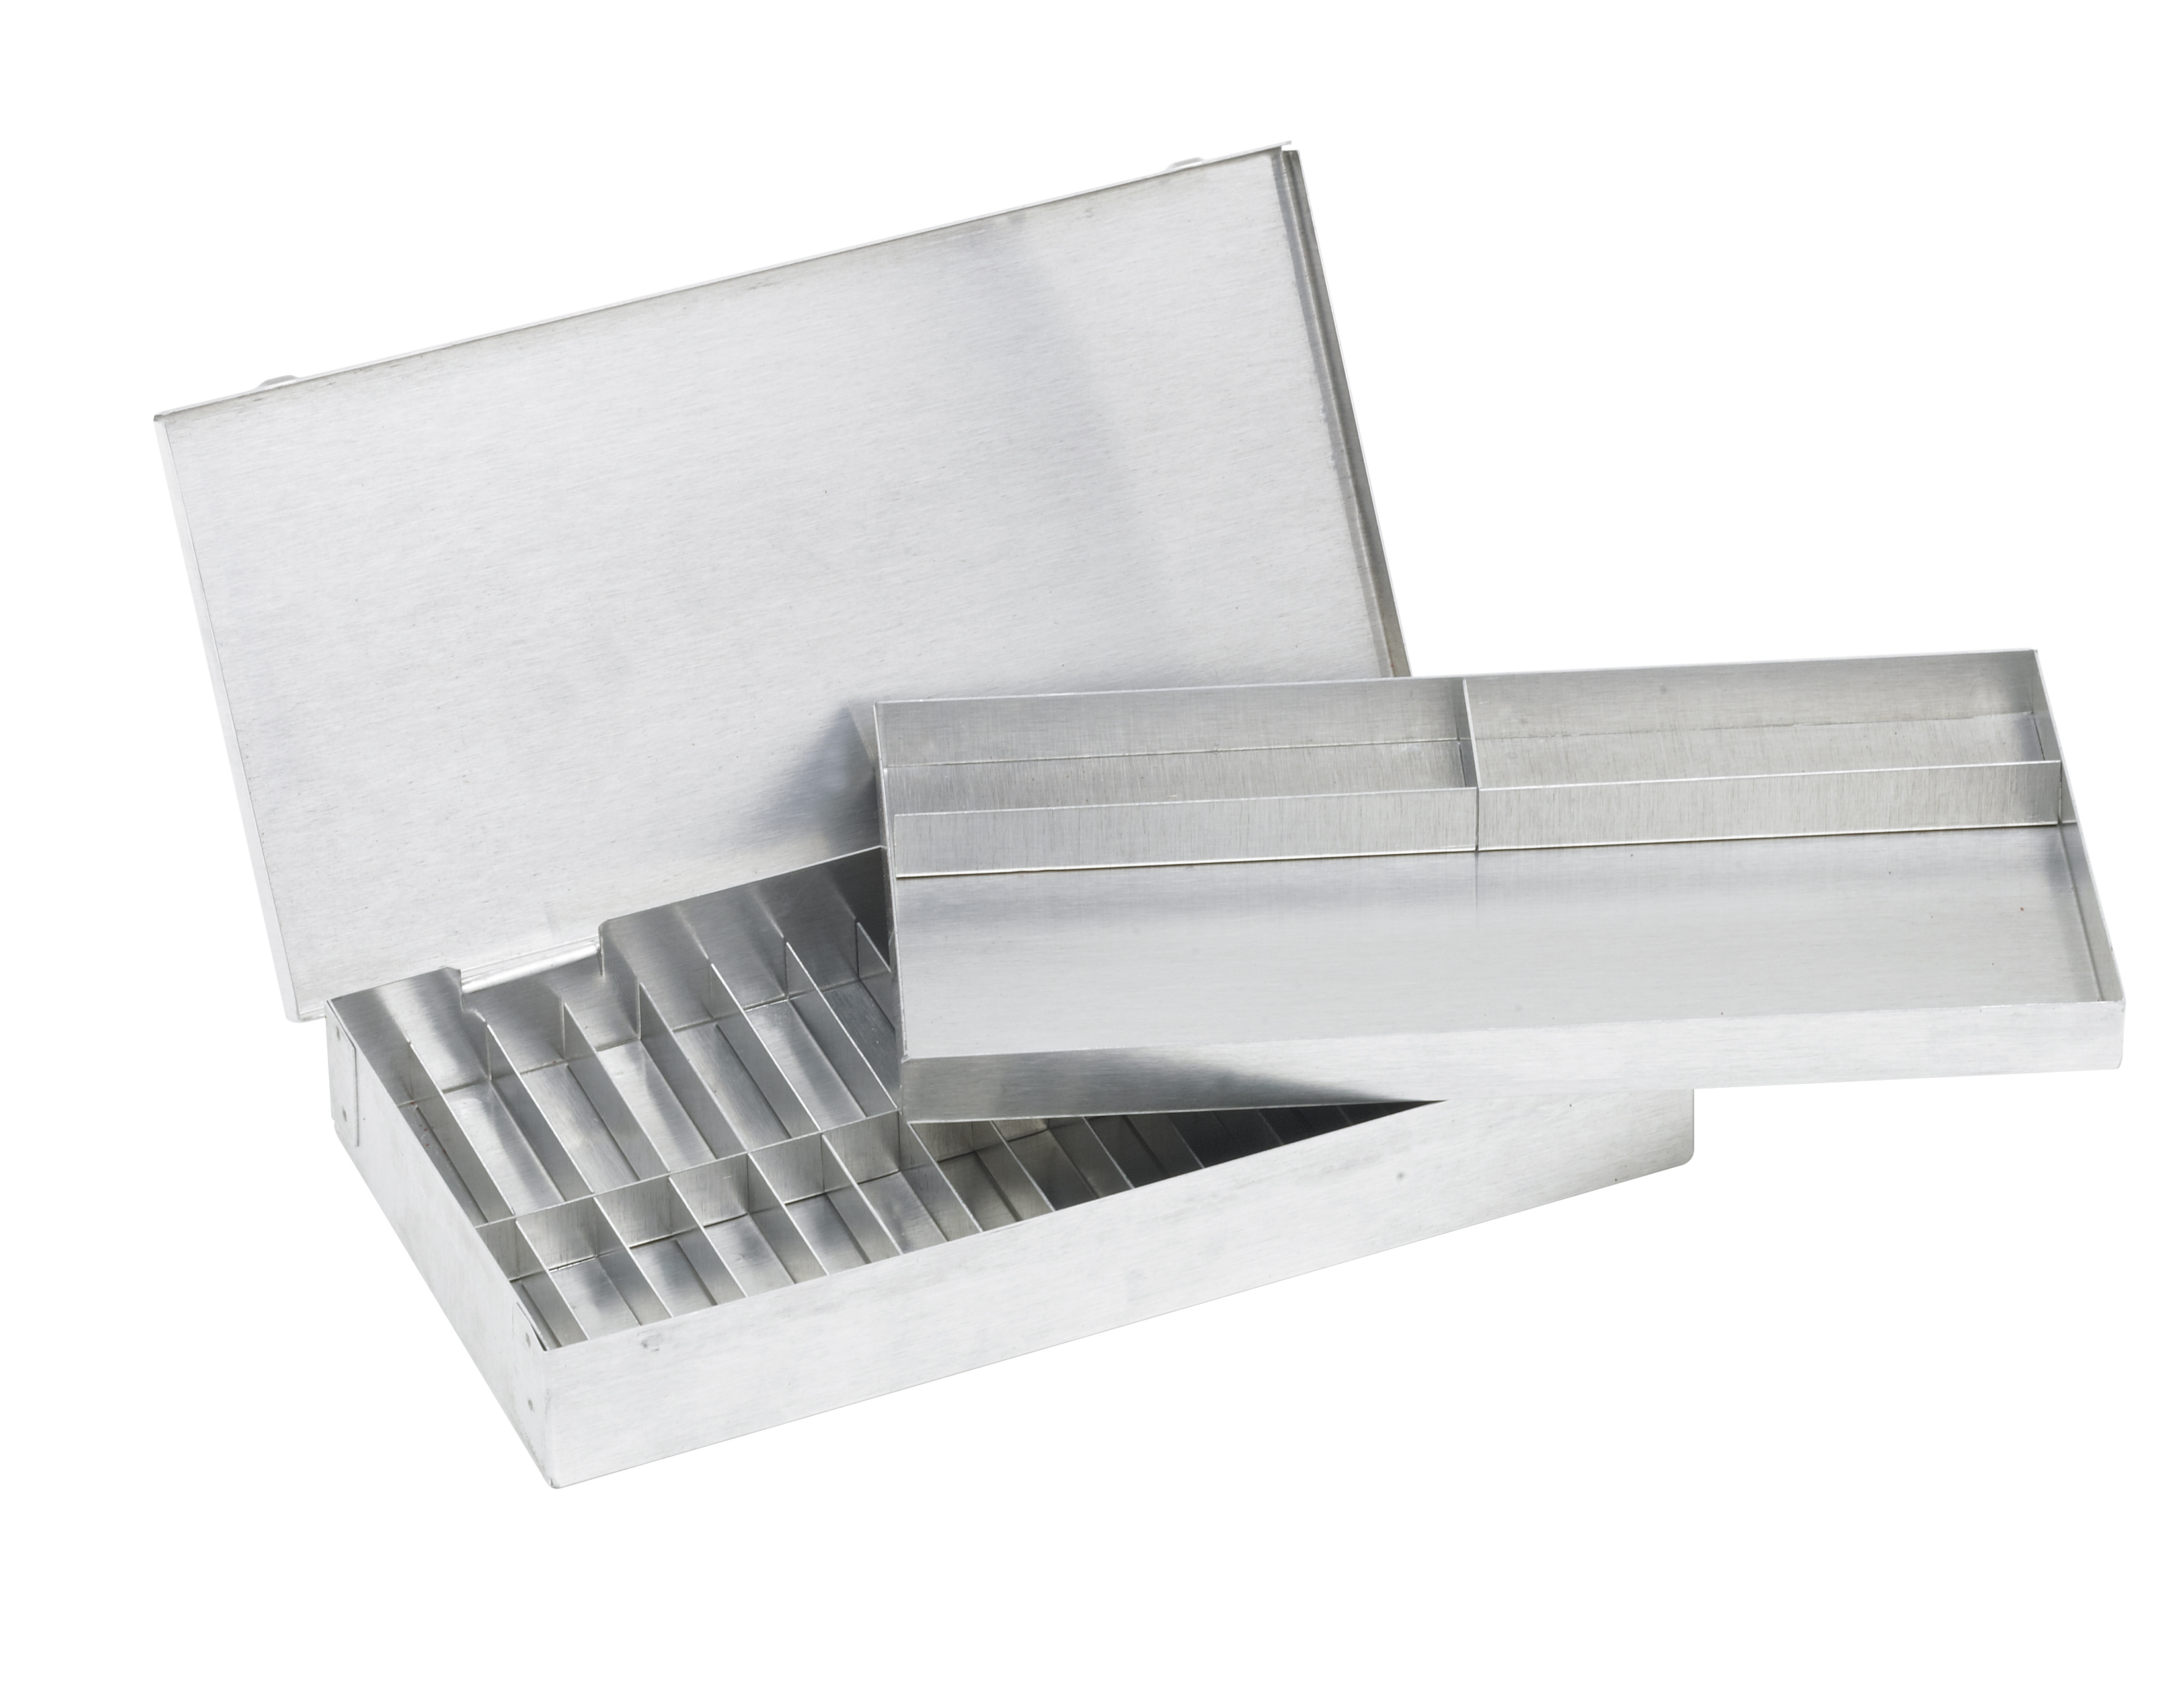 aluminum-root-canal-box-with-compartments-and-tray-uo8-017-47380-miltex.jpg